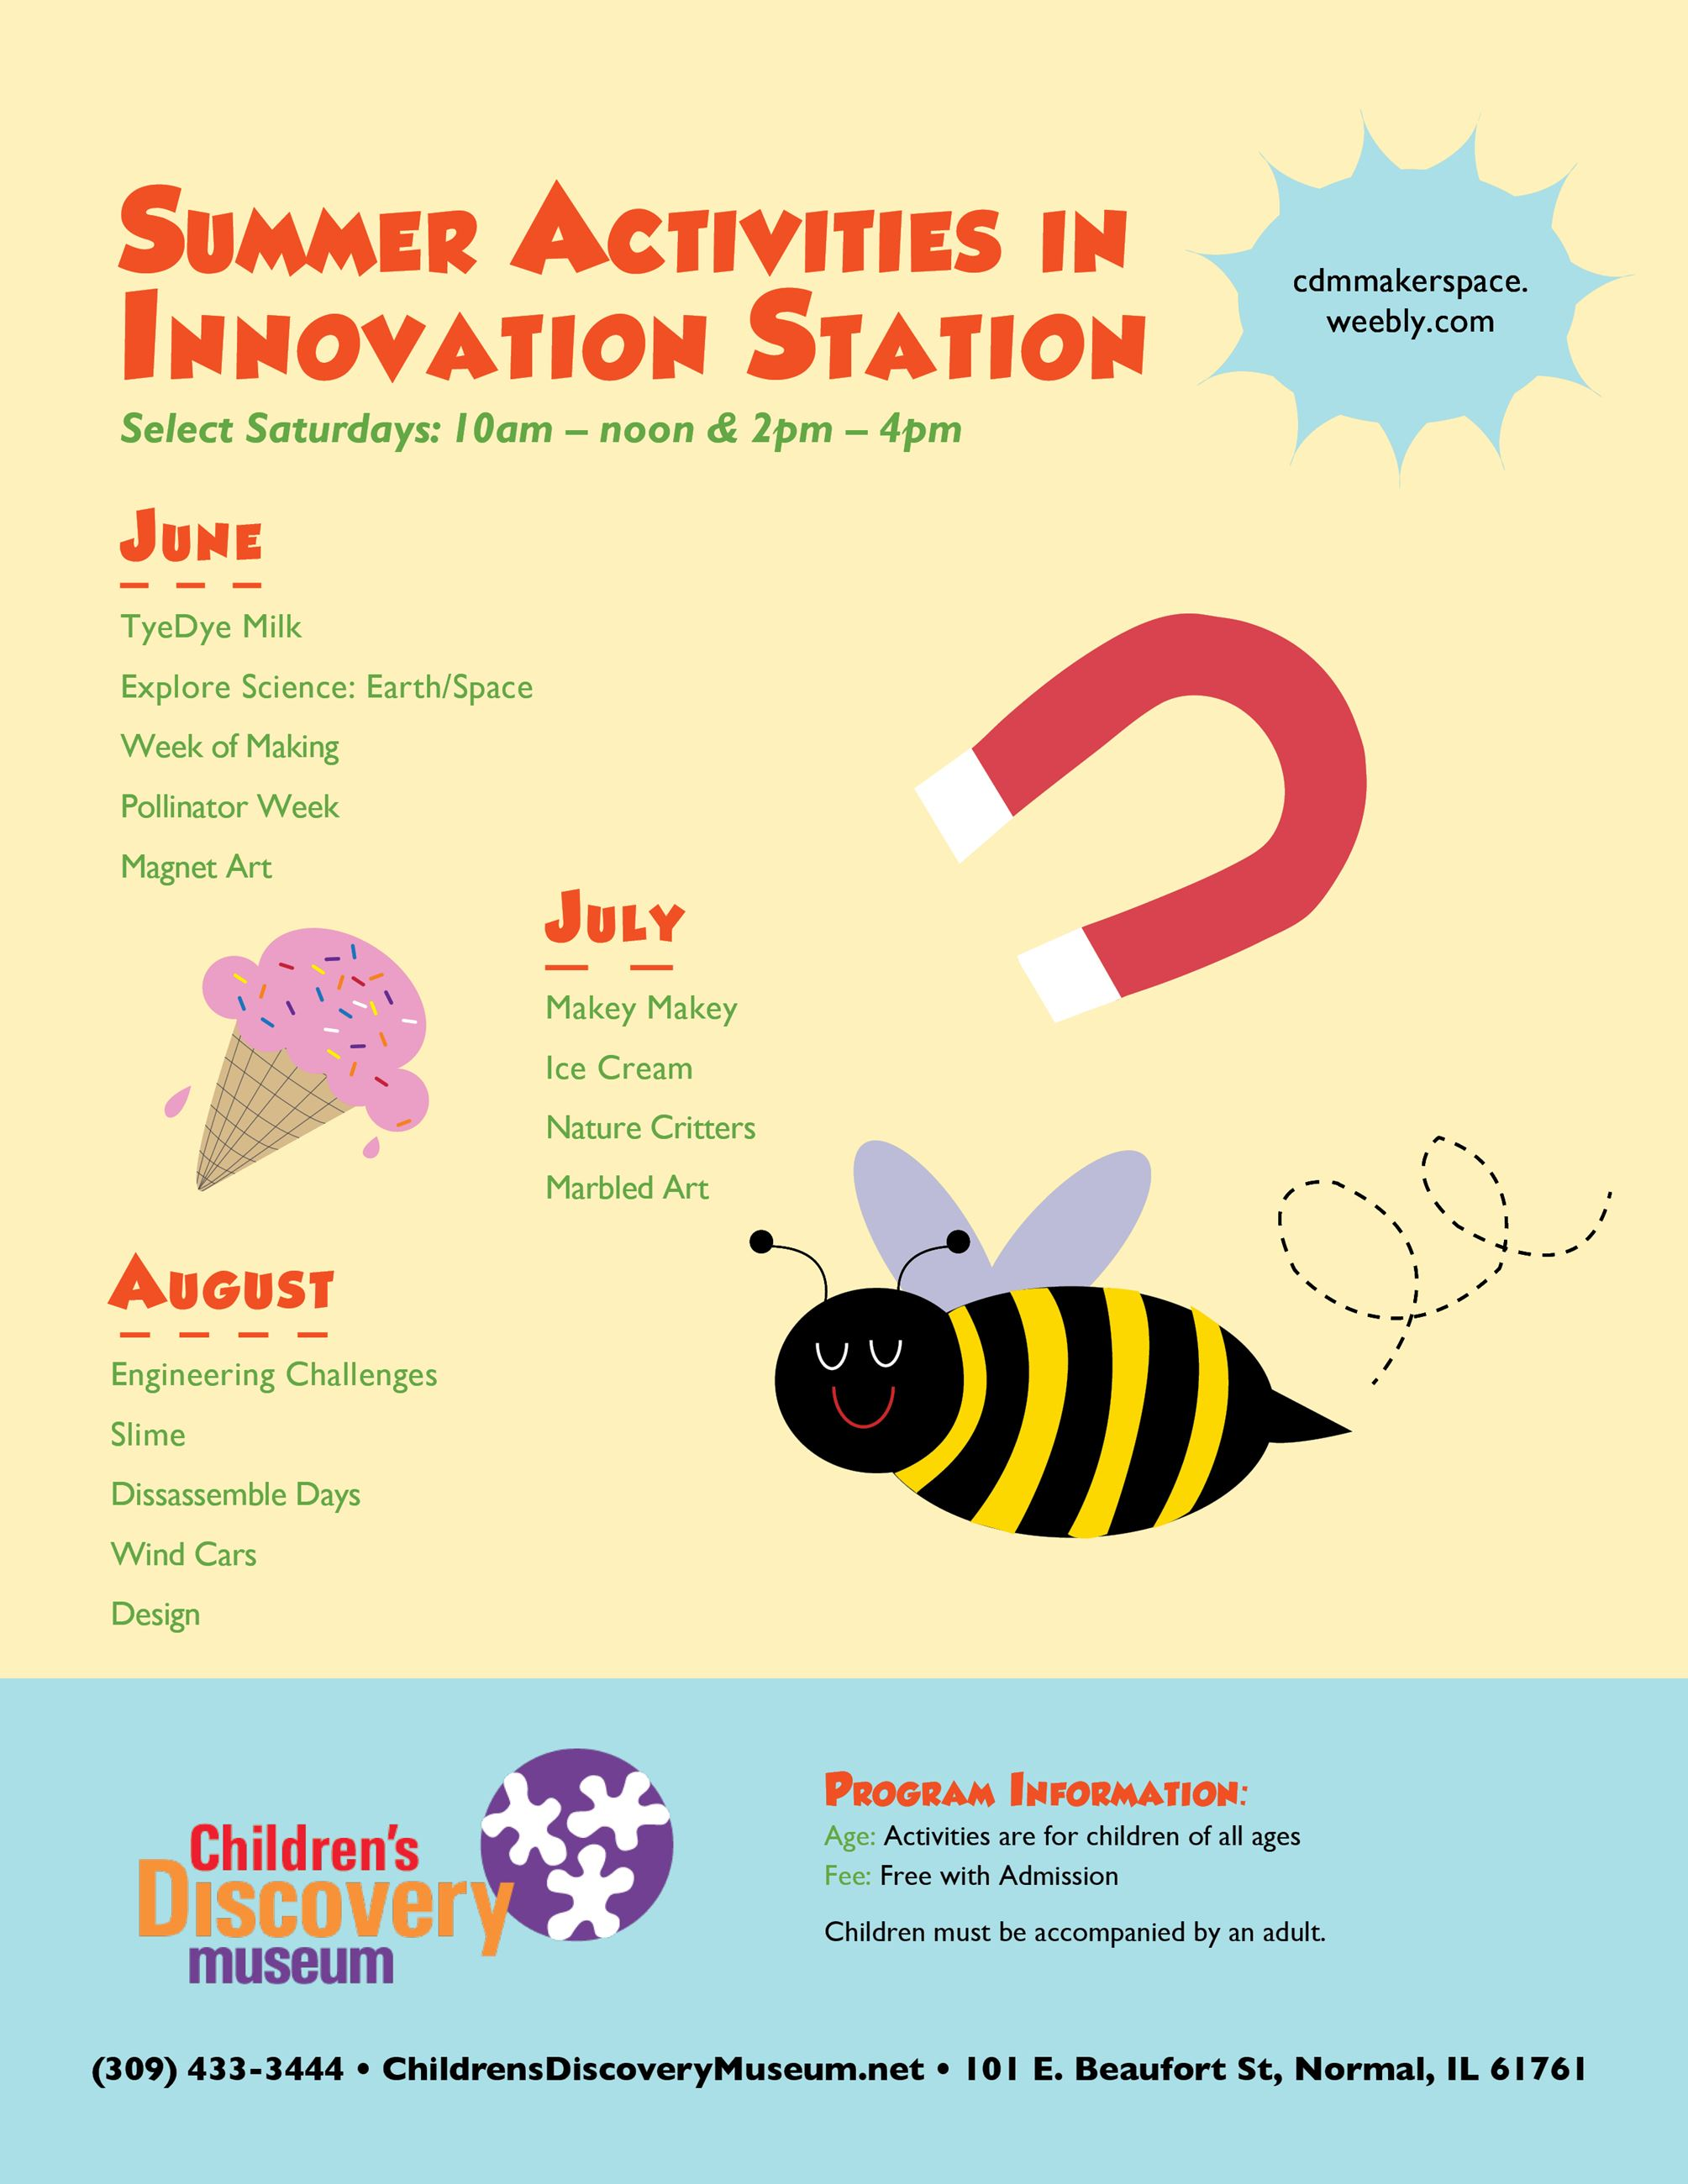 Photo of Innovation Station Workshops summer activities that links to a PDF of this schedule